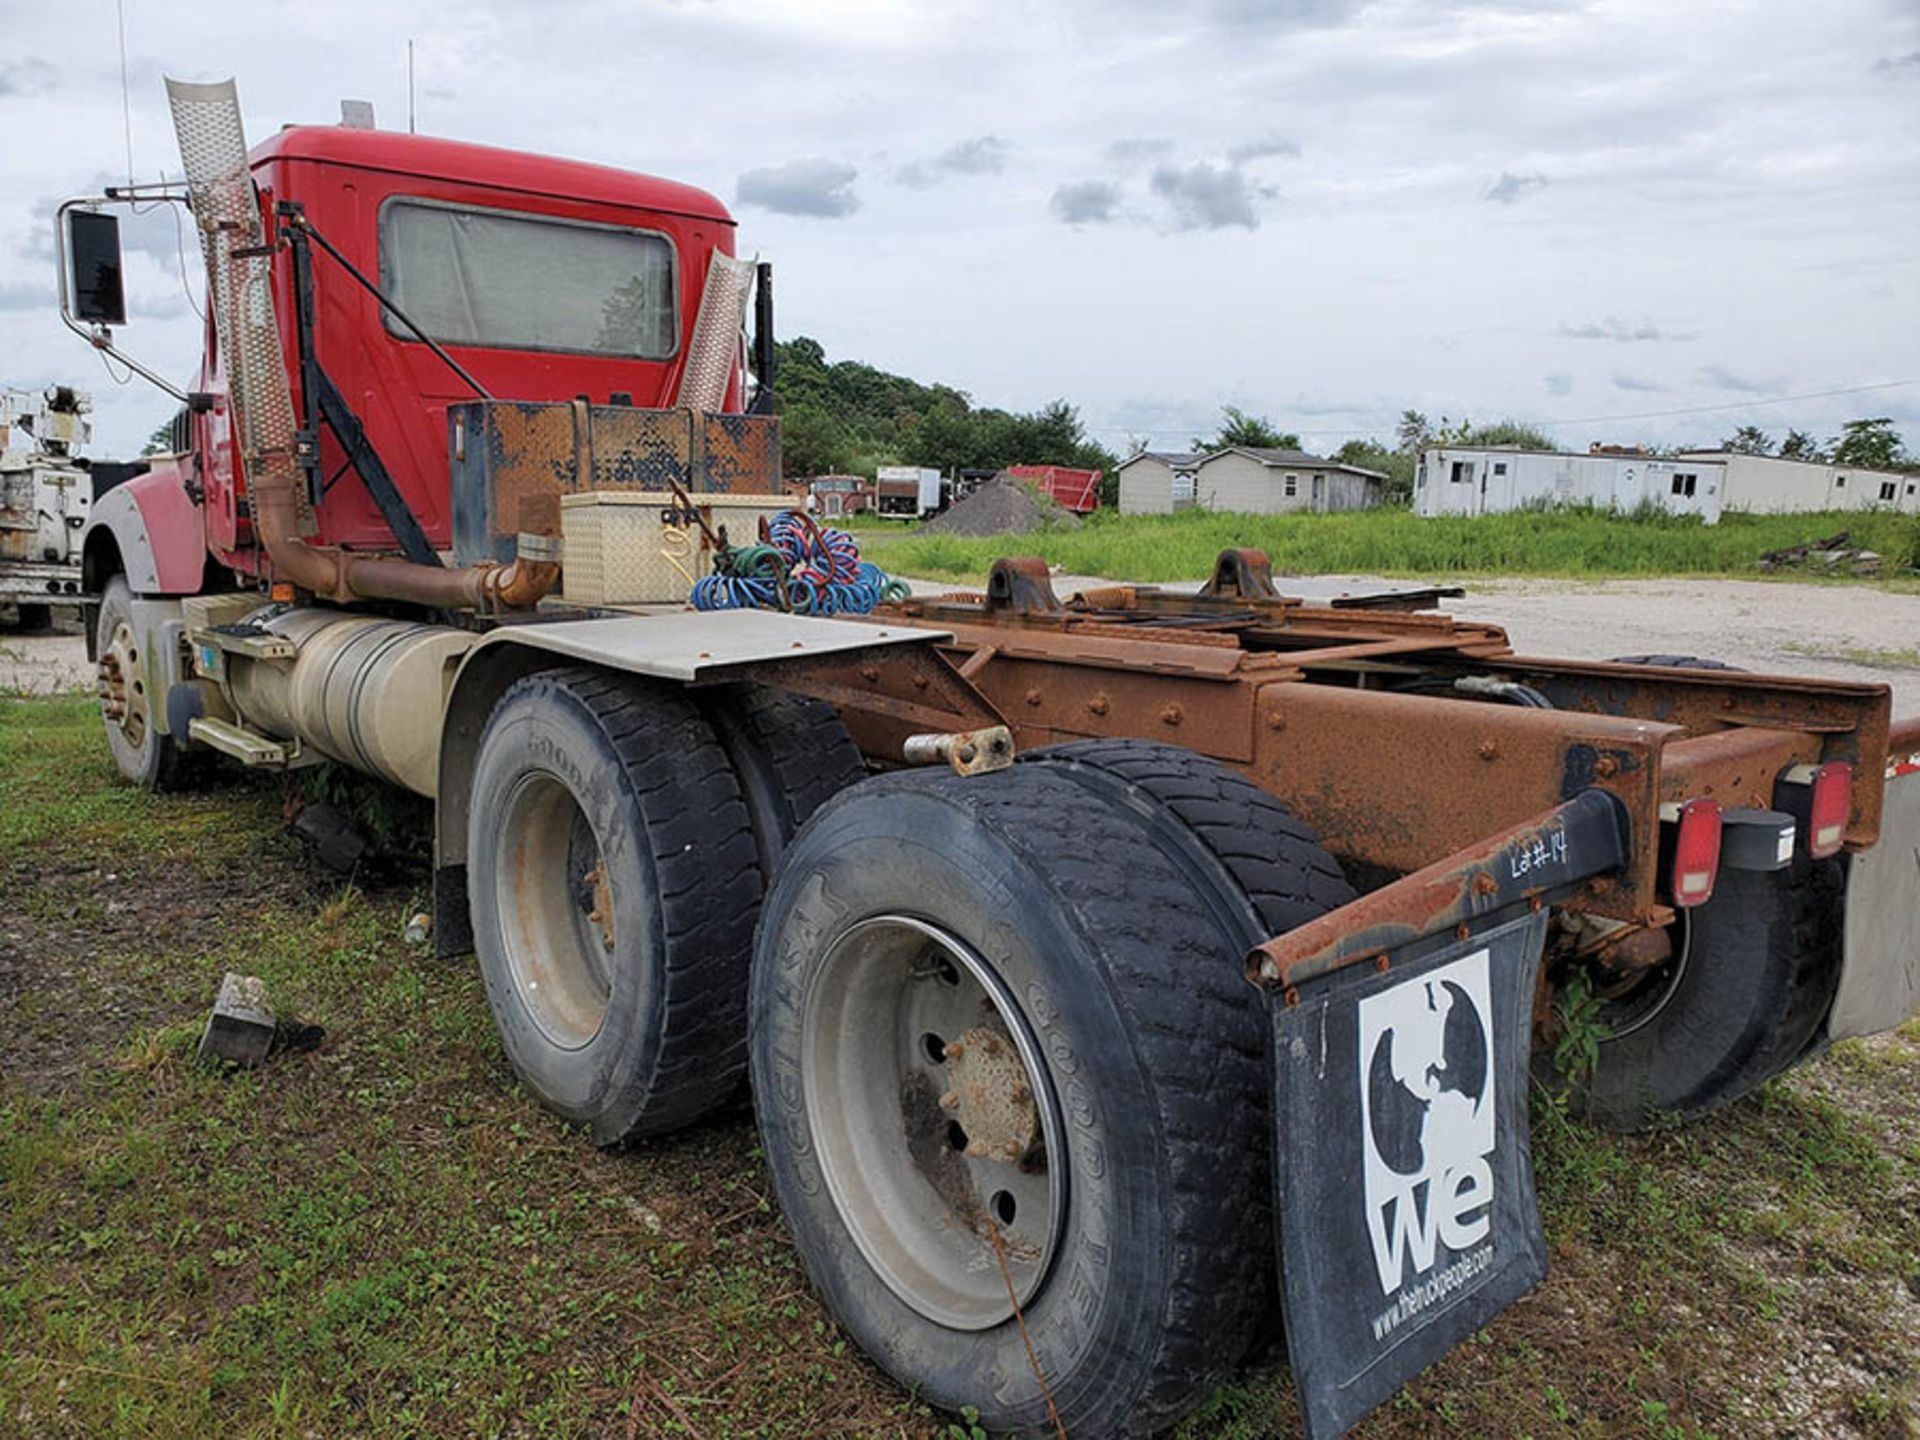 Lot 14 - 2008 MACK GU713 T/A DAY CAB TRACTOR, MAXITORQUE 18 SPEED TRANS., WET LINES MACK INLINE SIX DIESEL